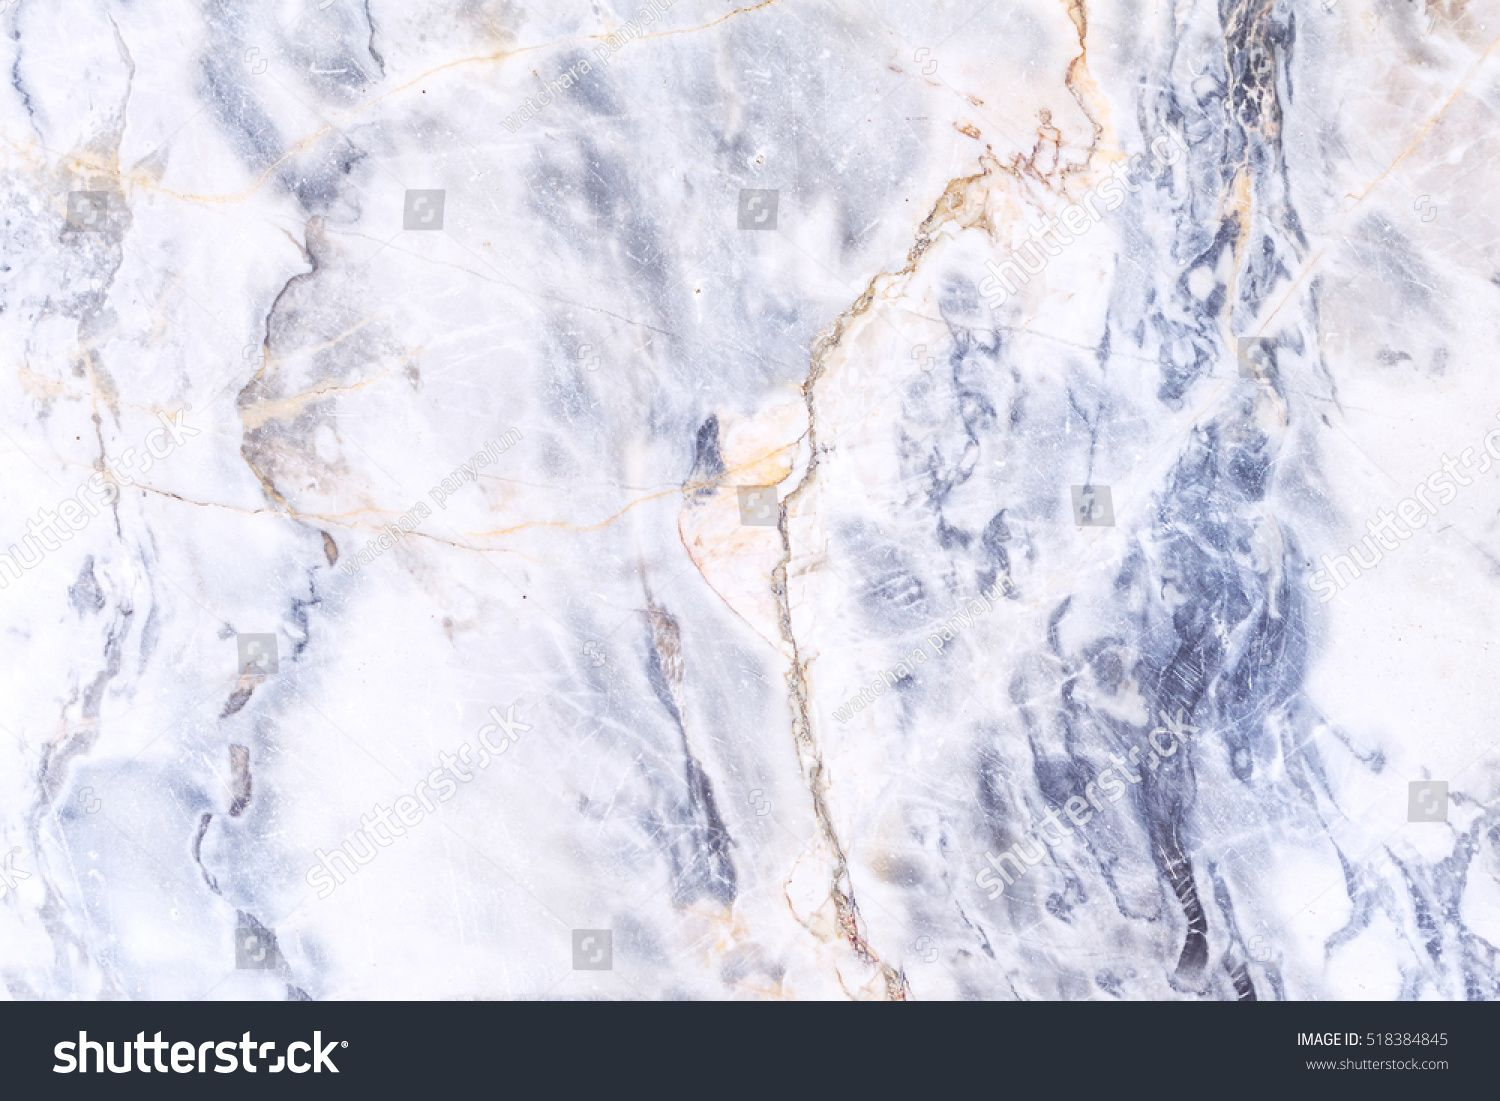 Gray Light Marble Stone Texture Background Royalty Free Image Photo Blue Marble Wallpaper Marble Wallpaper Textured Background